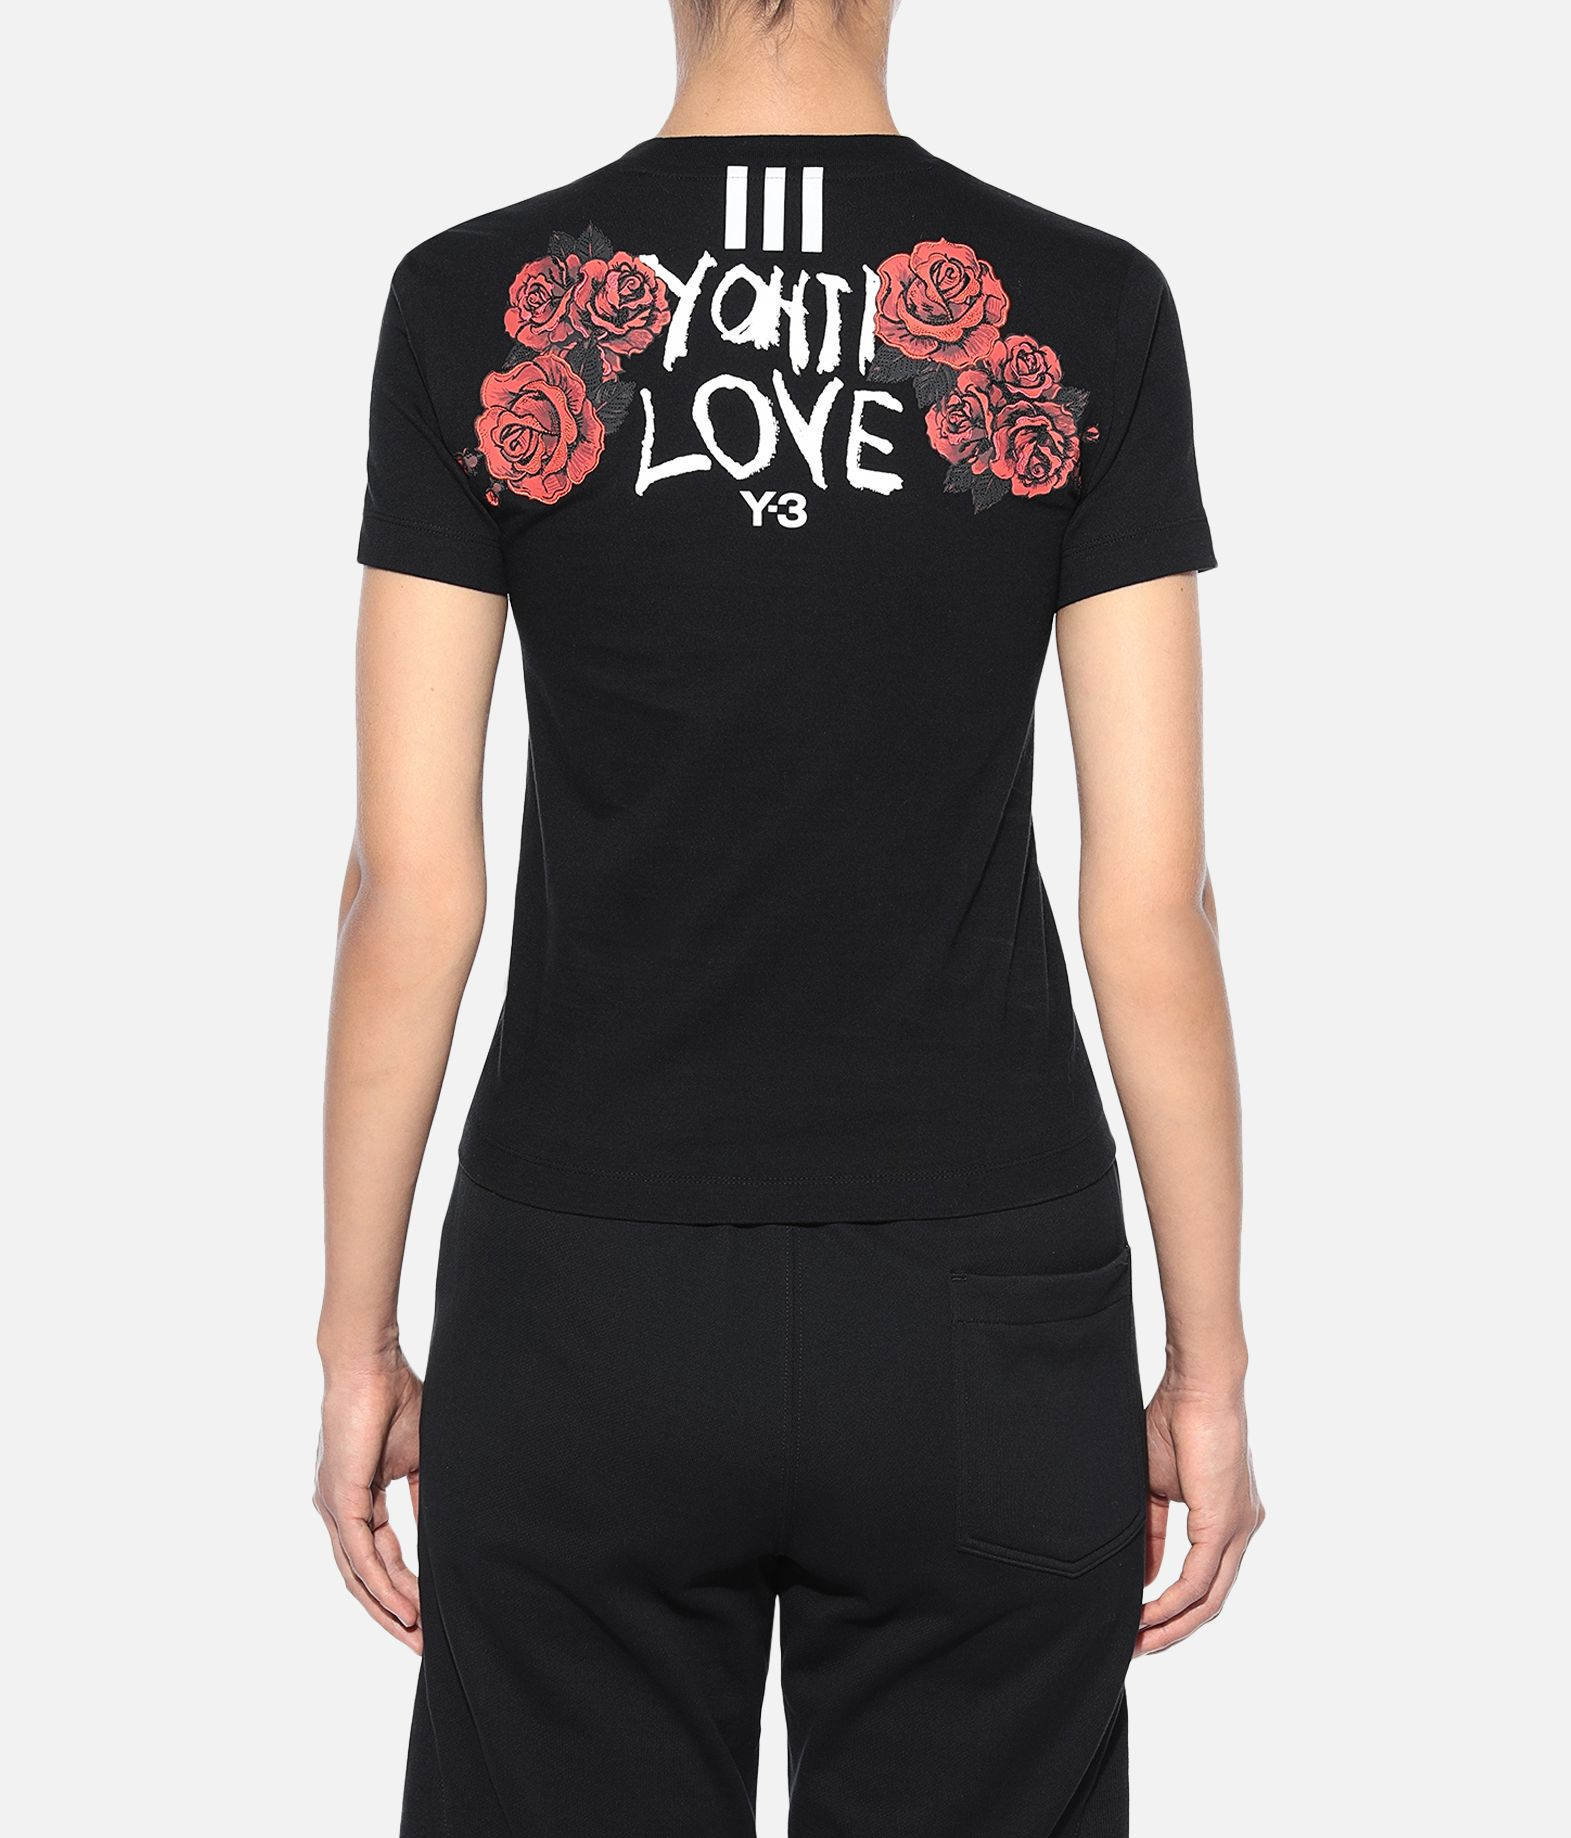 Y-3 Y-3 Yohji Love Tubular Tee Short sleeve t-shirt Woman d